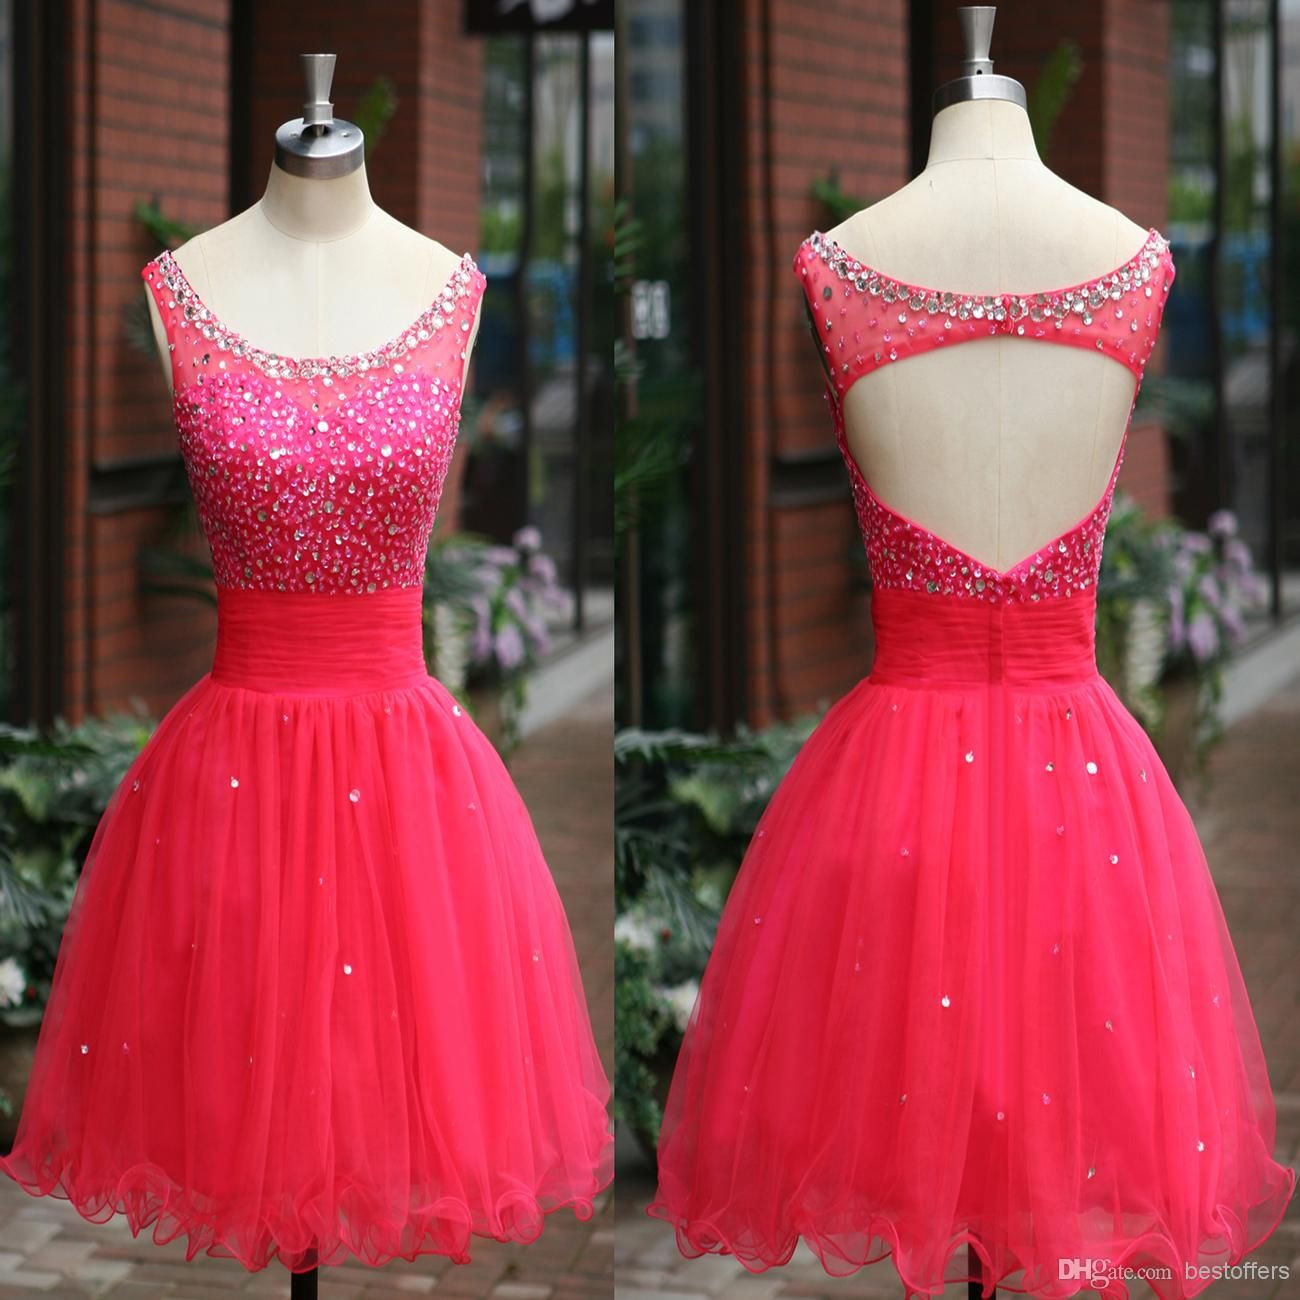 Homecoming dress boutiques custom made cocktailhomecoming dresses